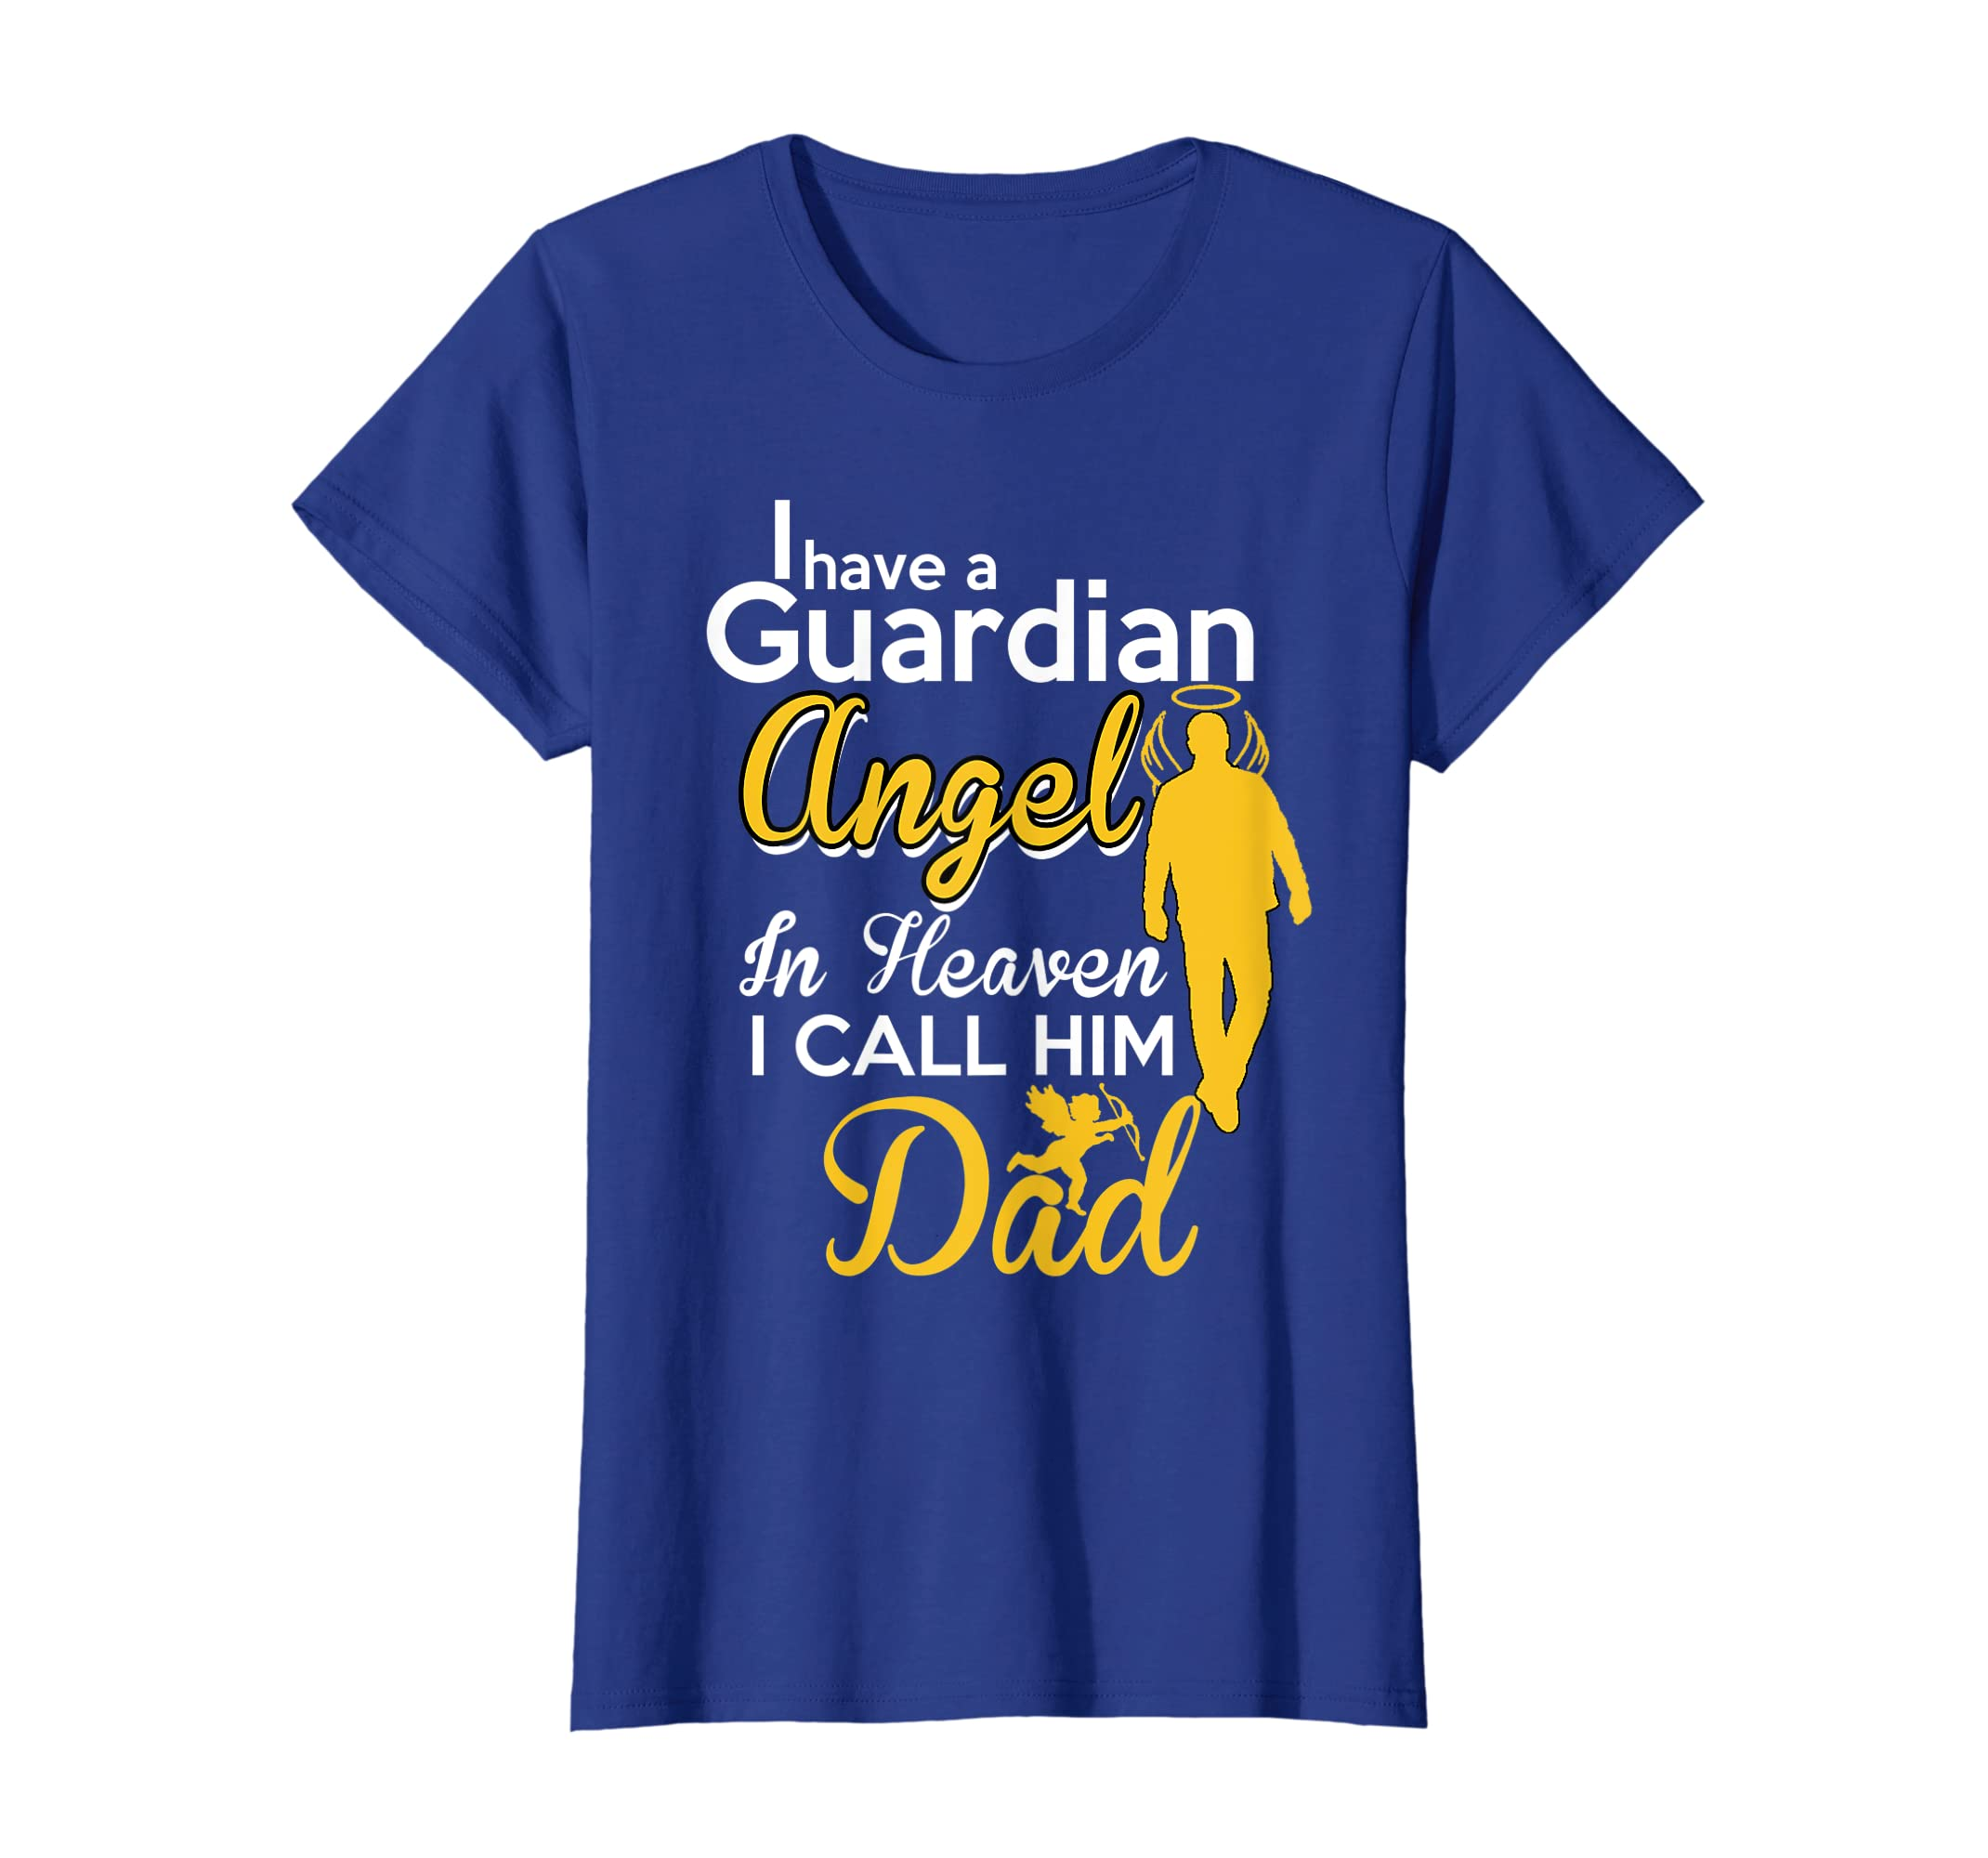 1c436556 Amazon.com: I Have A Guardian Angel In Heaven I Call Him Dad T shirt:  Clothing